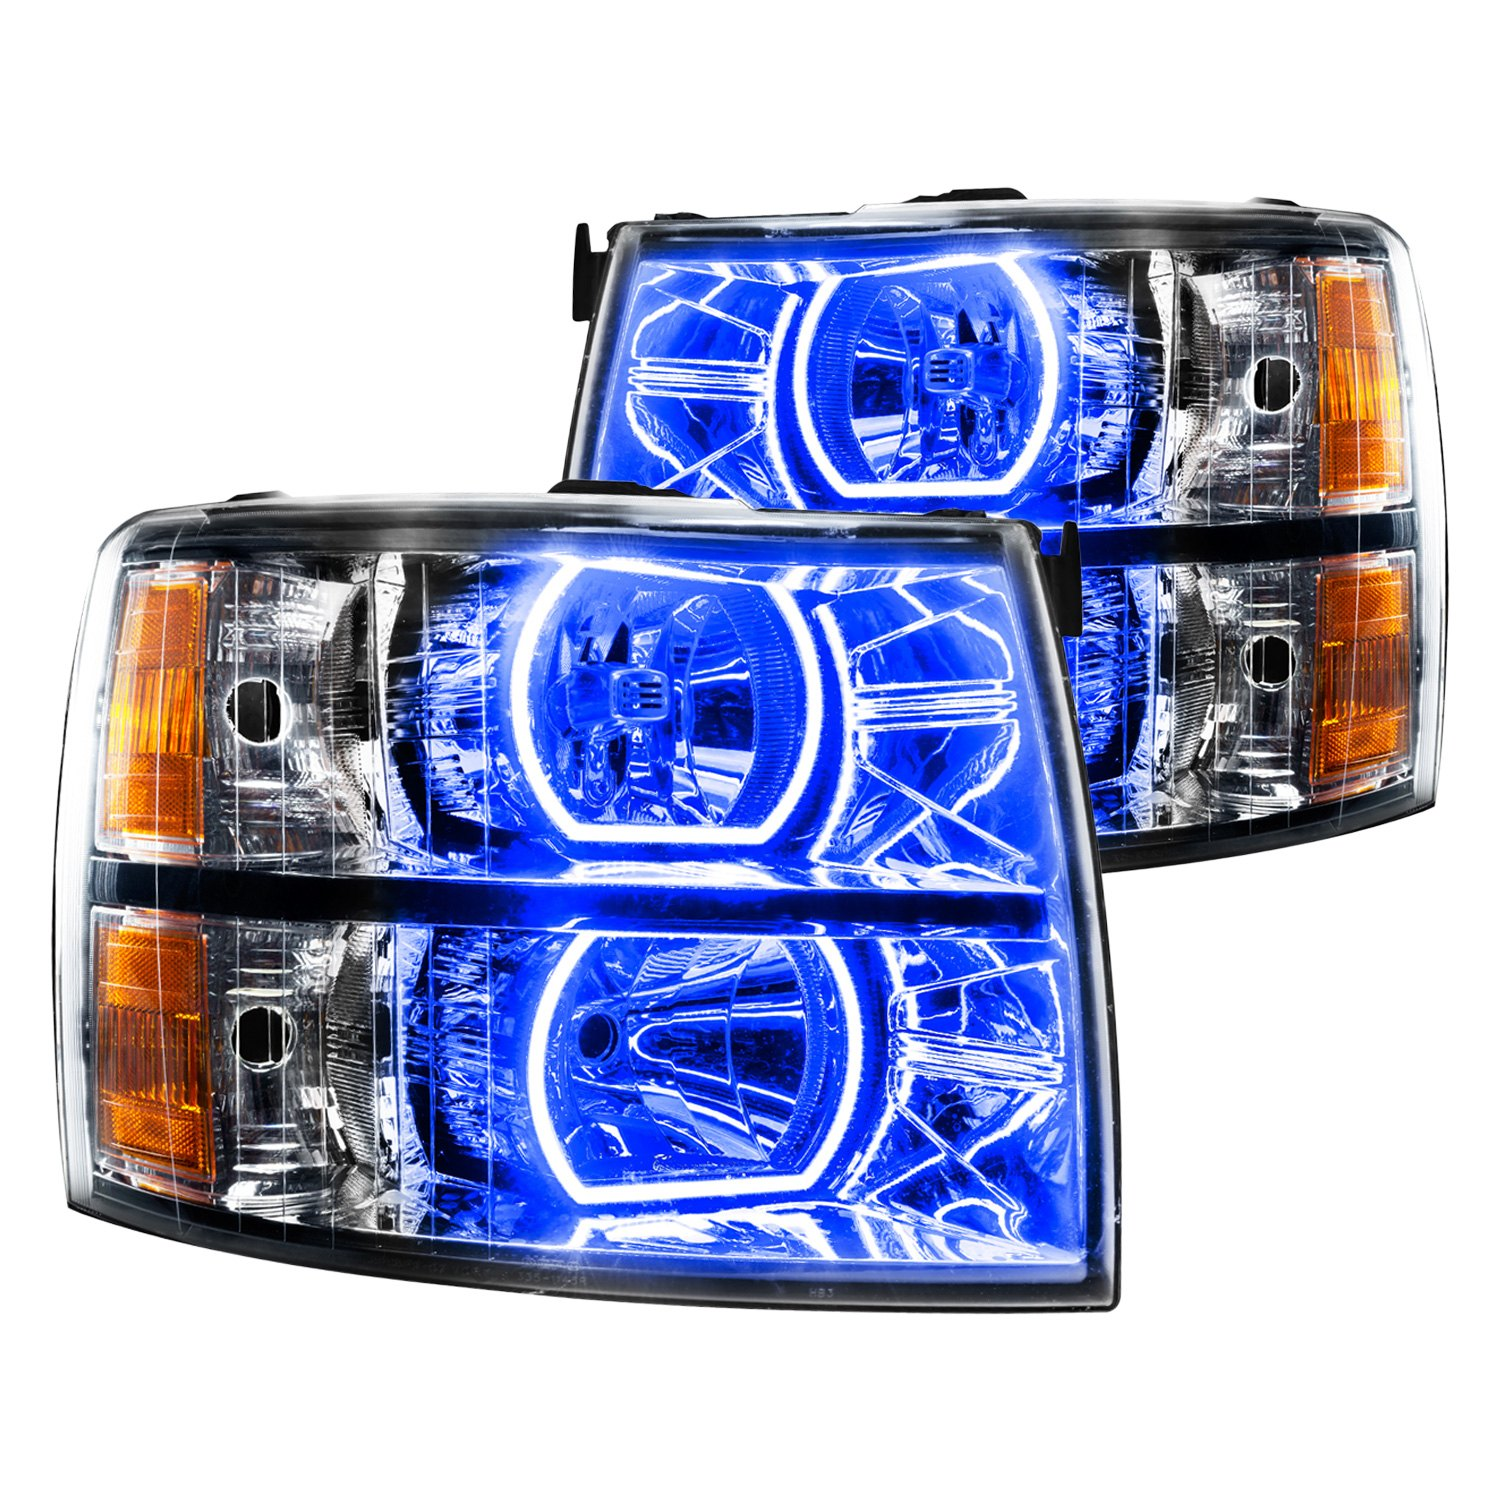 Oracle Lighting Black Factory Style Headlights With Blue Plasma Led Square Ring Halos Preinstalled